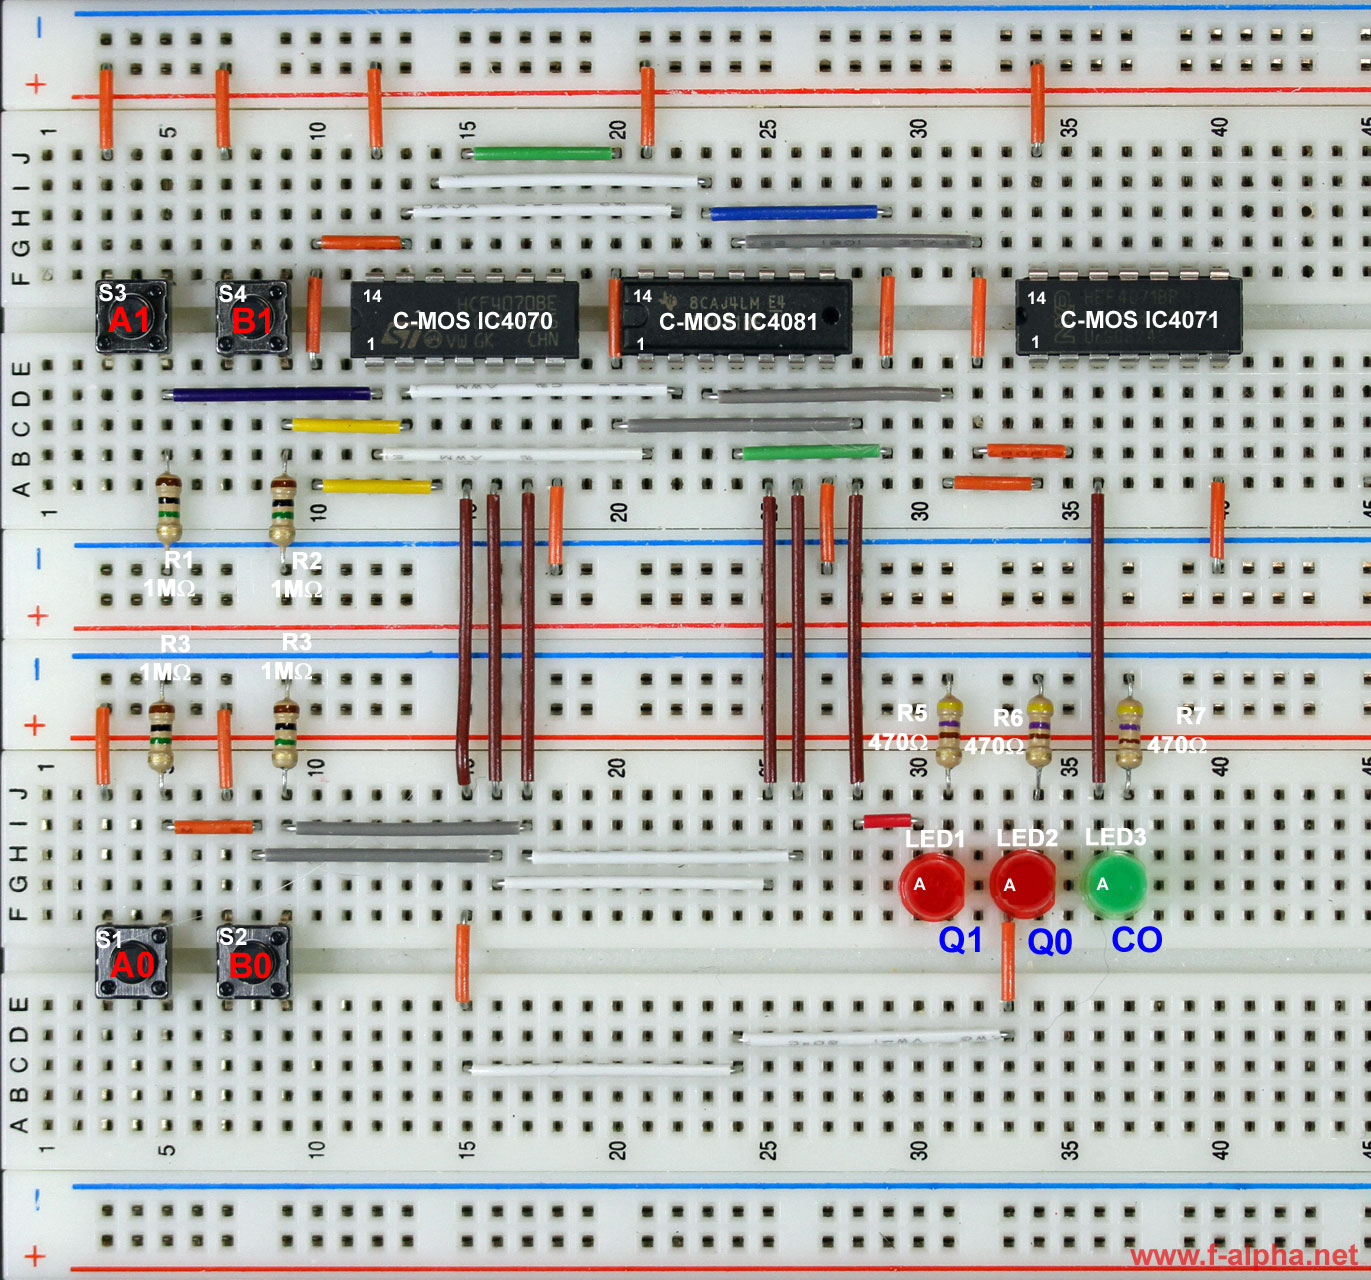 F Alphanet Experiment 4 2 Bit Adder Full Diagram Circuit